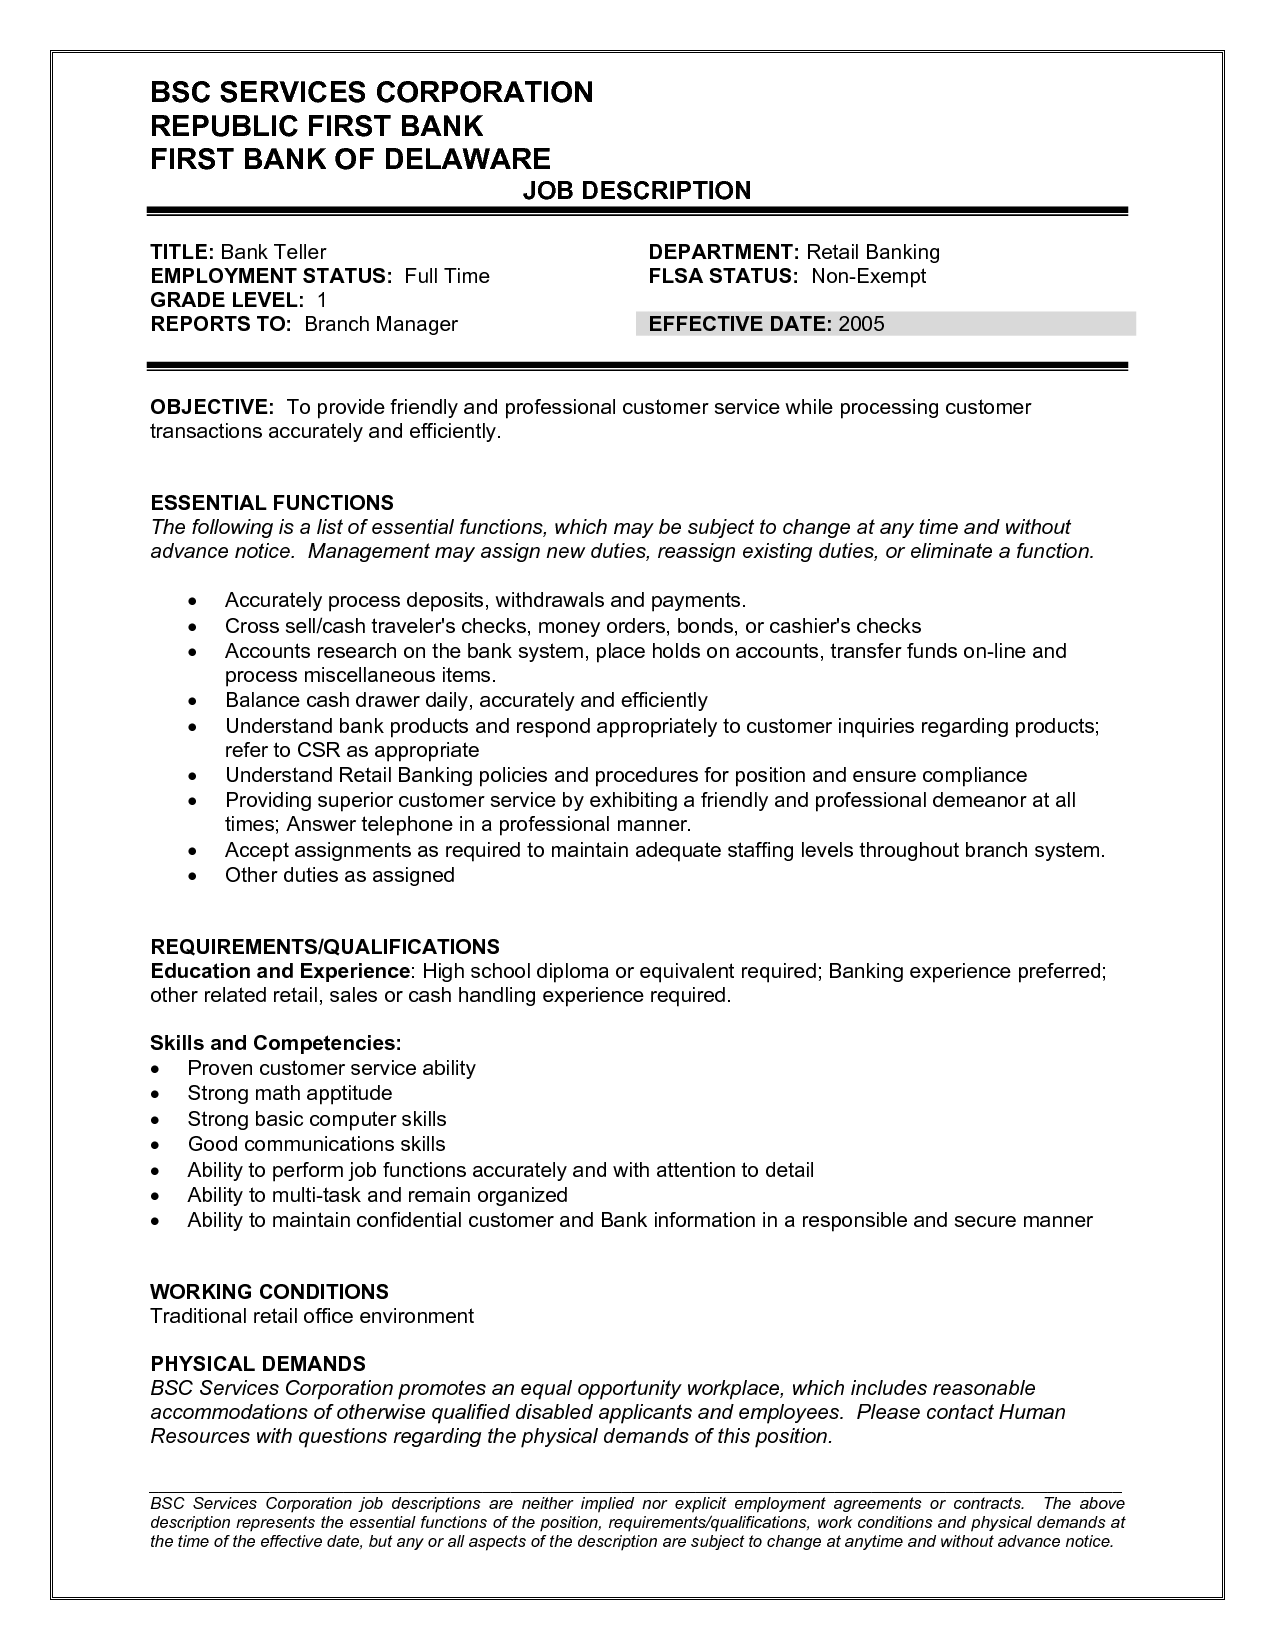 resume Teller Job Description For Resume bank teller job description for resume samplebusinessresume com duties and responsibilities